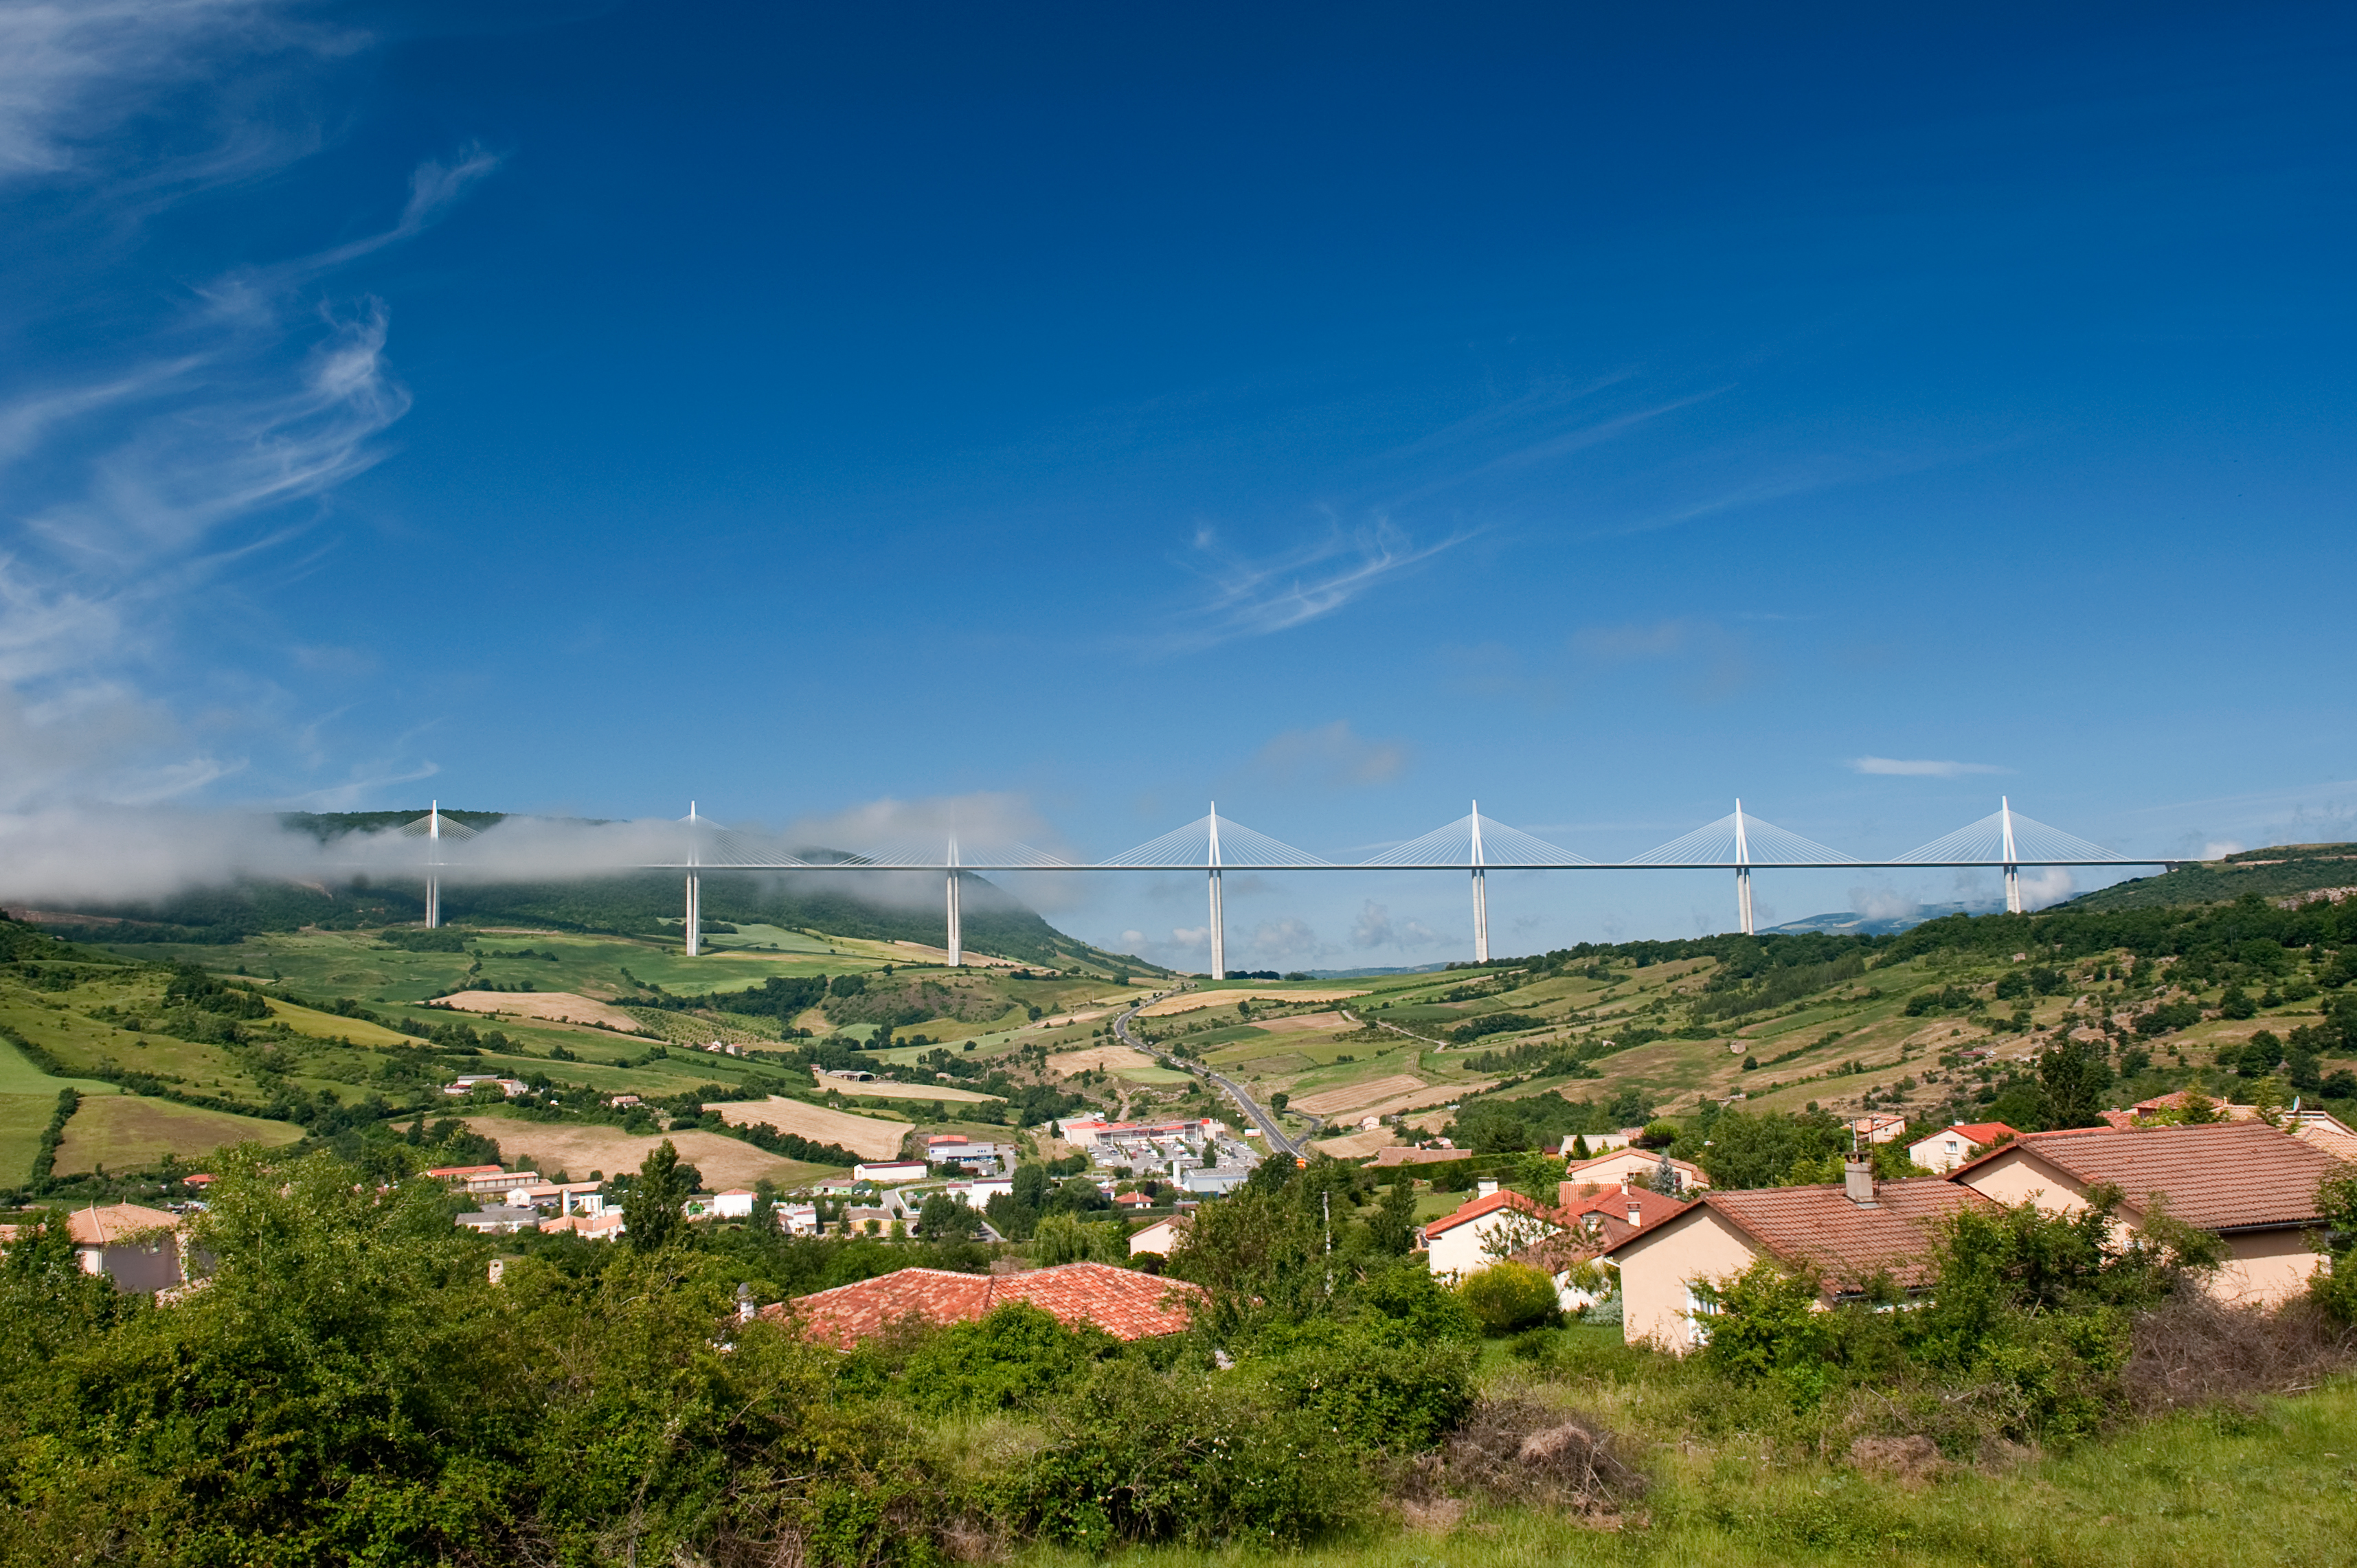 A View Of The Millau Viaduct In 2006